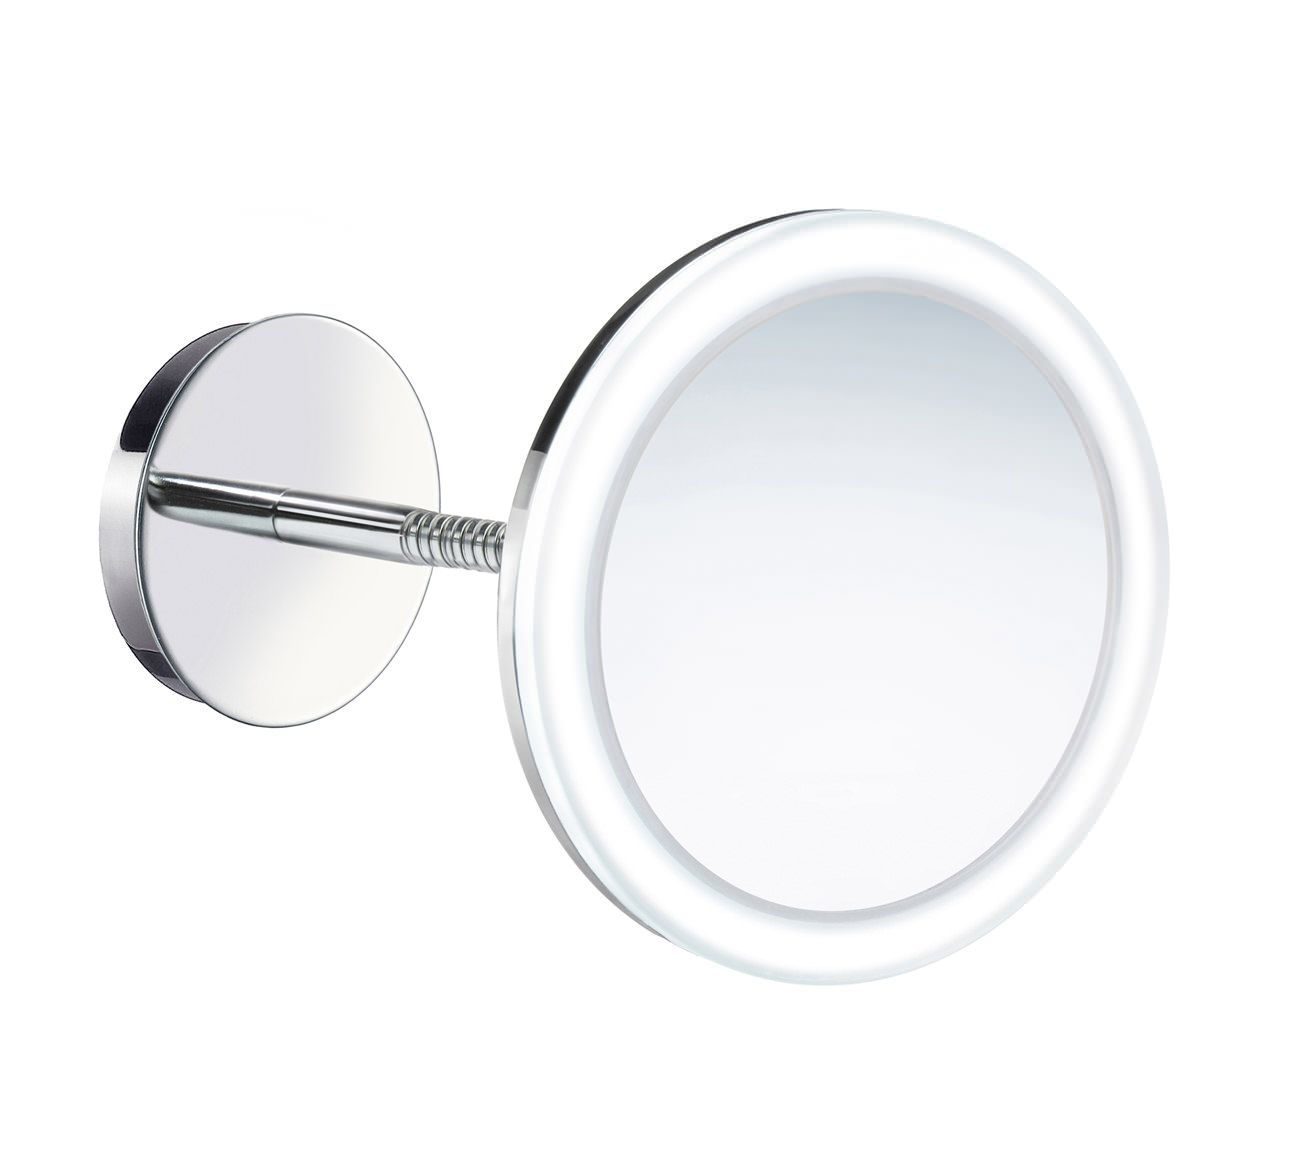 1000  Images About Magnifying Mirrors On Pinterest Wall Mount  Bathroom  Lighting And Magnifying Mirror  1000  Images About Magnifying Mirrors On  Pinterest. Bathroom Magnifying Mirror   Home Decoration Ideas